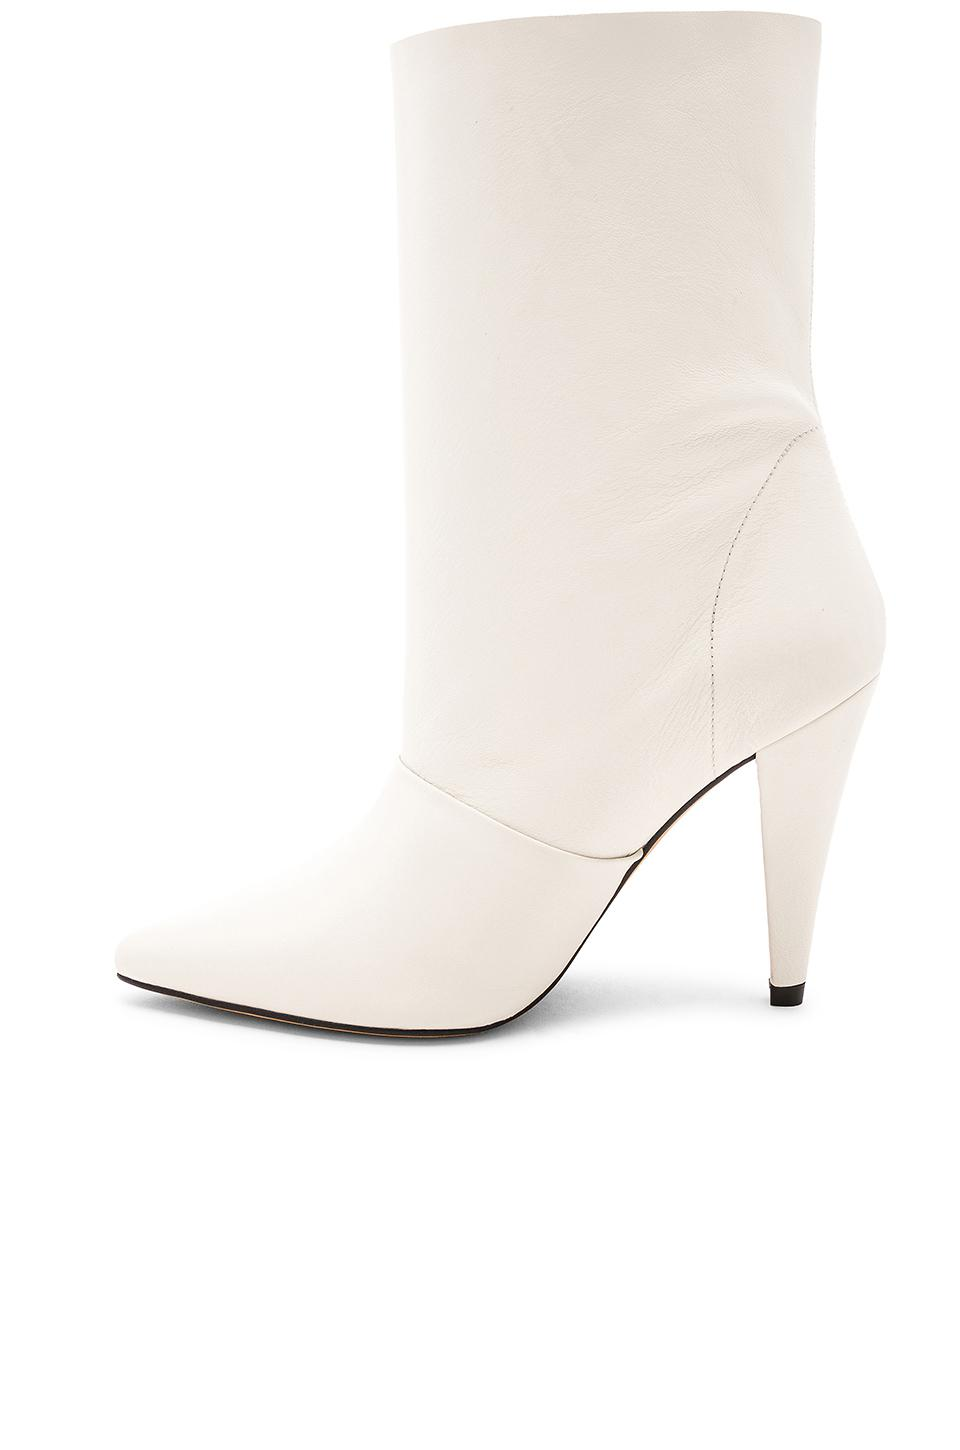 IRO Leather Avina Bootie in Ecru (White)